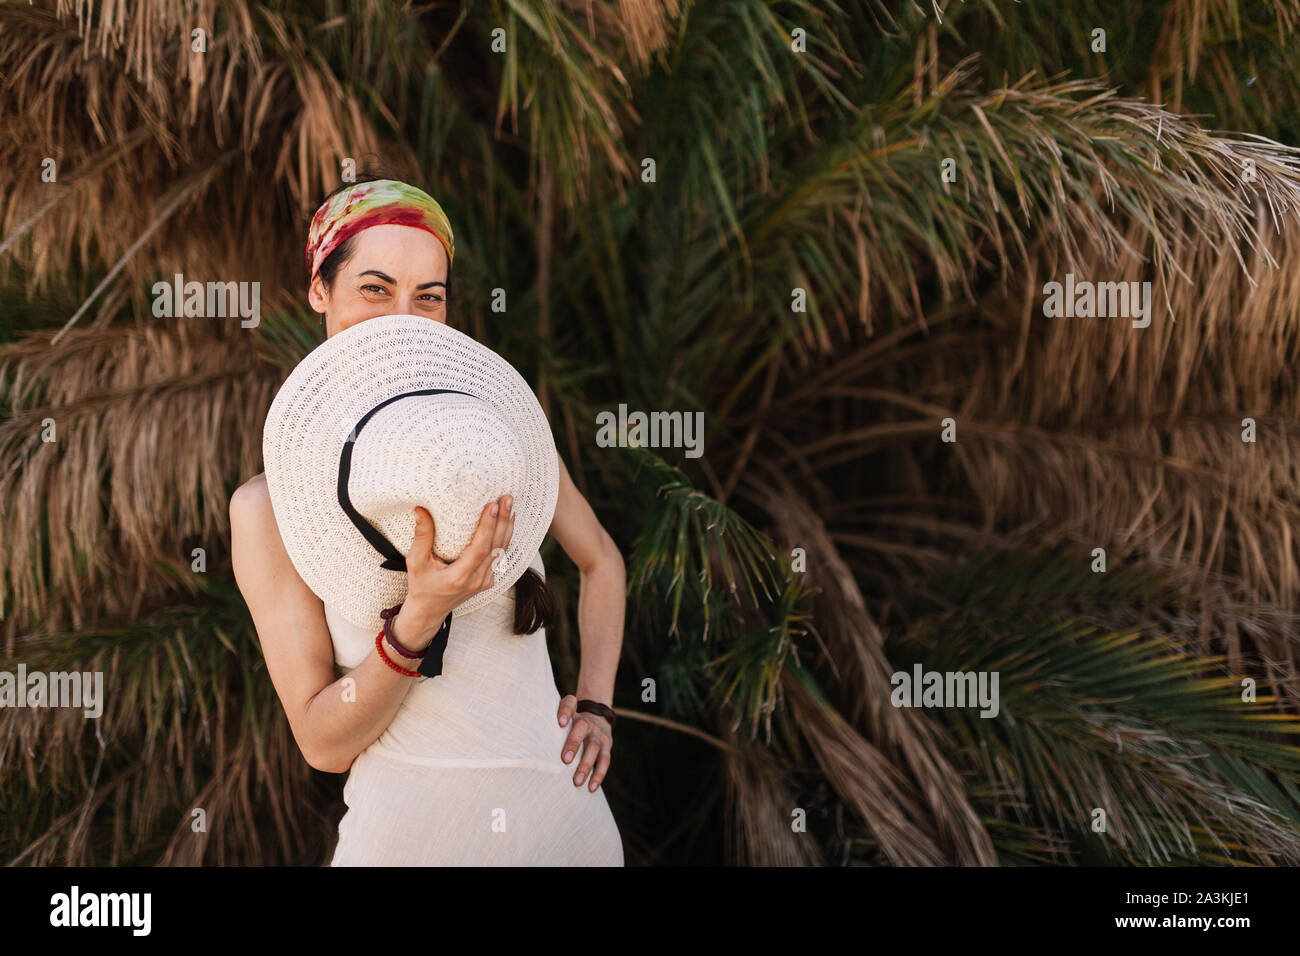 Young woman dressed in a white dress covers his mouth with hat standing close to palm tree Stock Photo